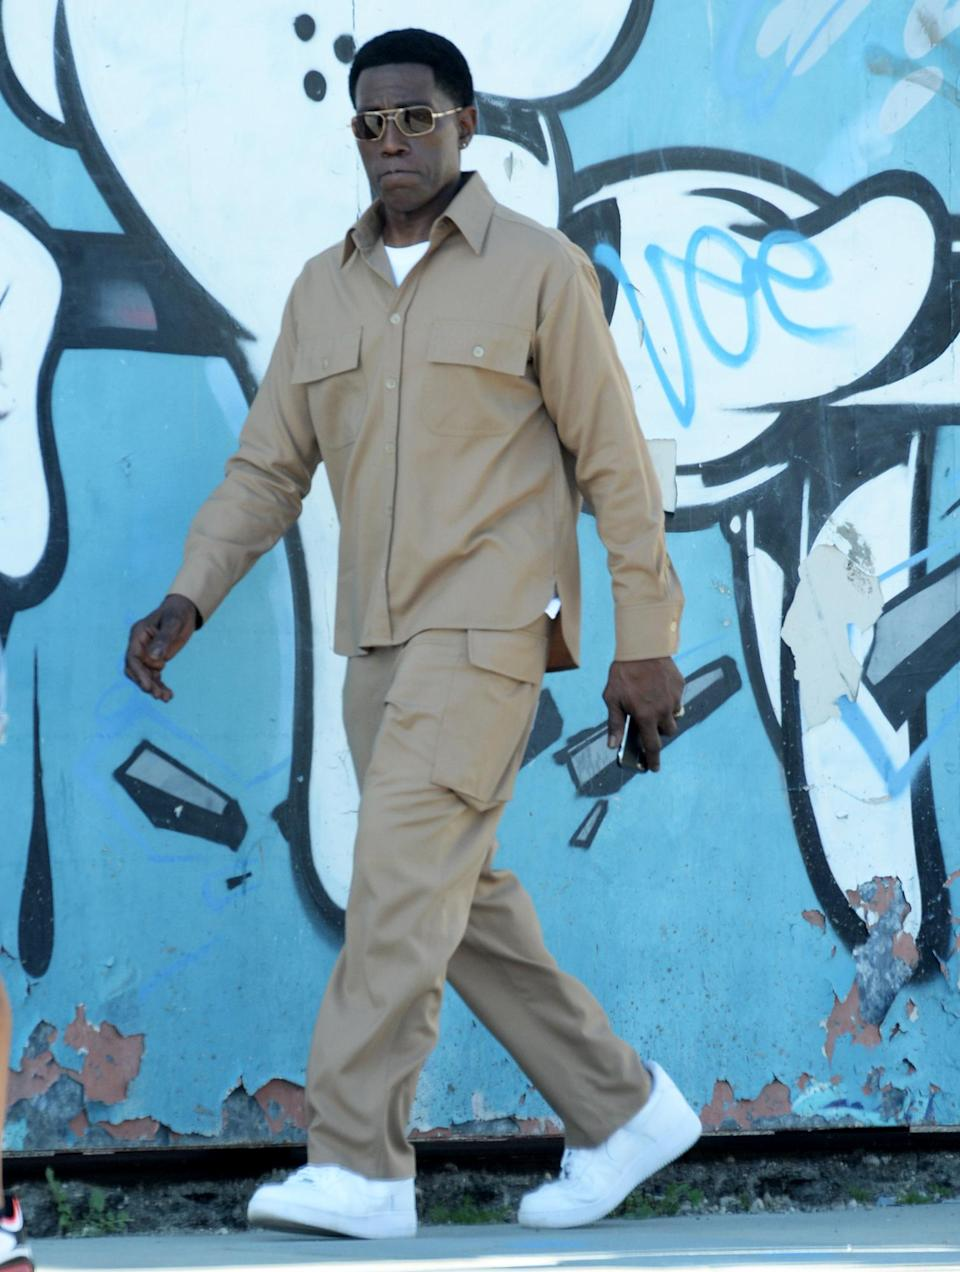 <p>Wesley Snipes is seen in character while filming on the set of a secret project with Kevin Hart on Monday in L.A.</p>